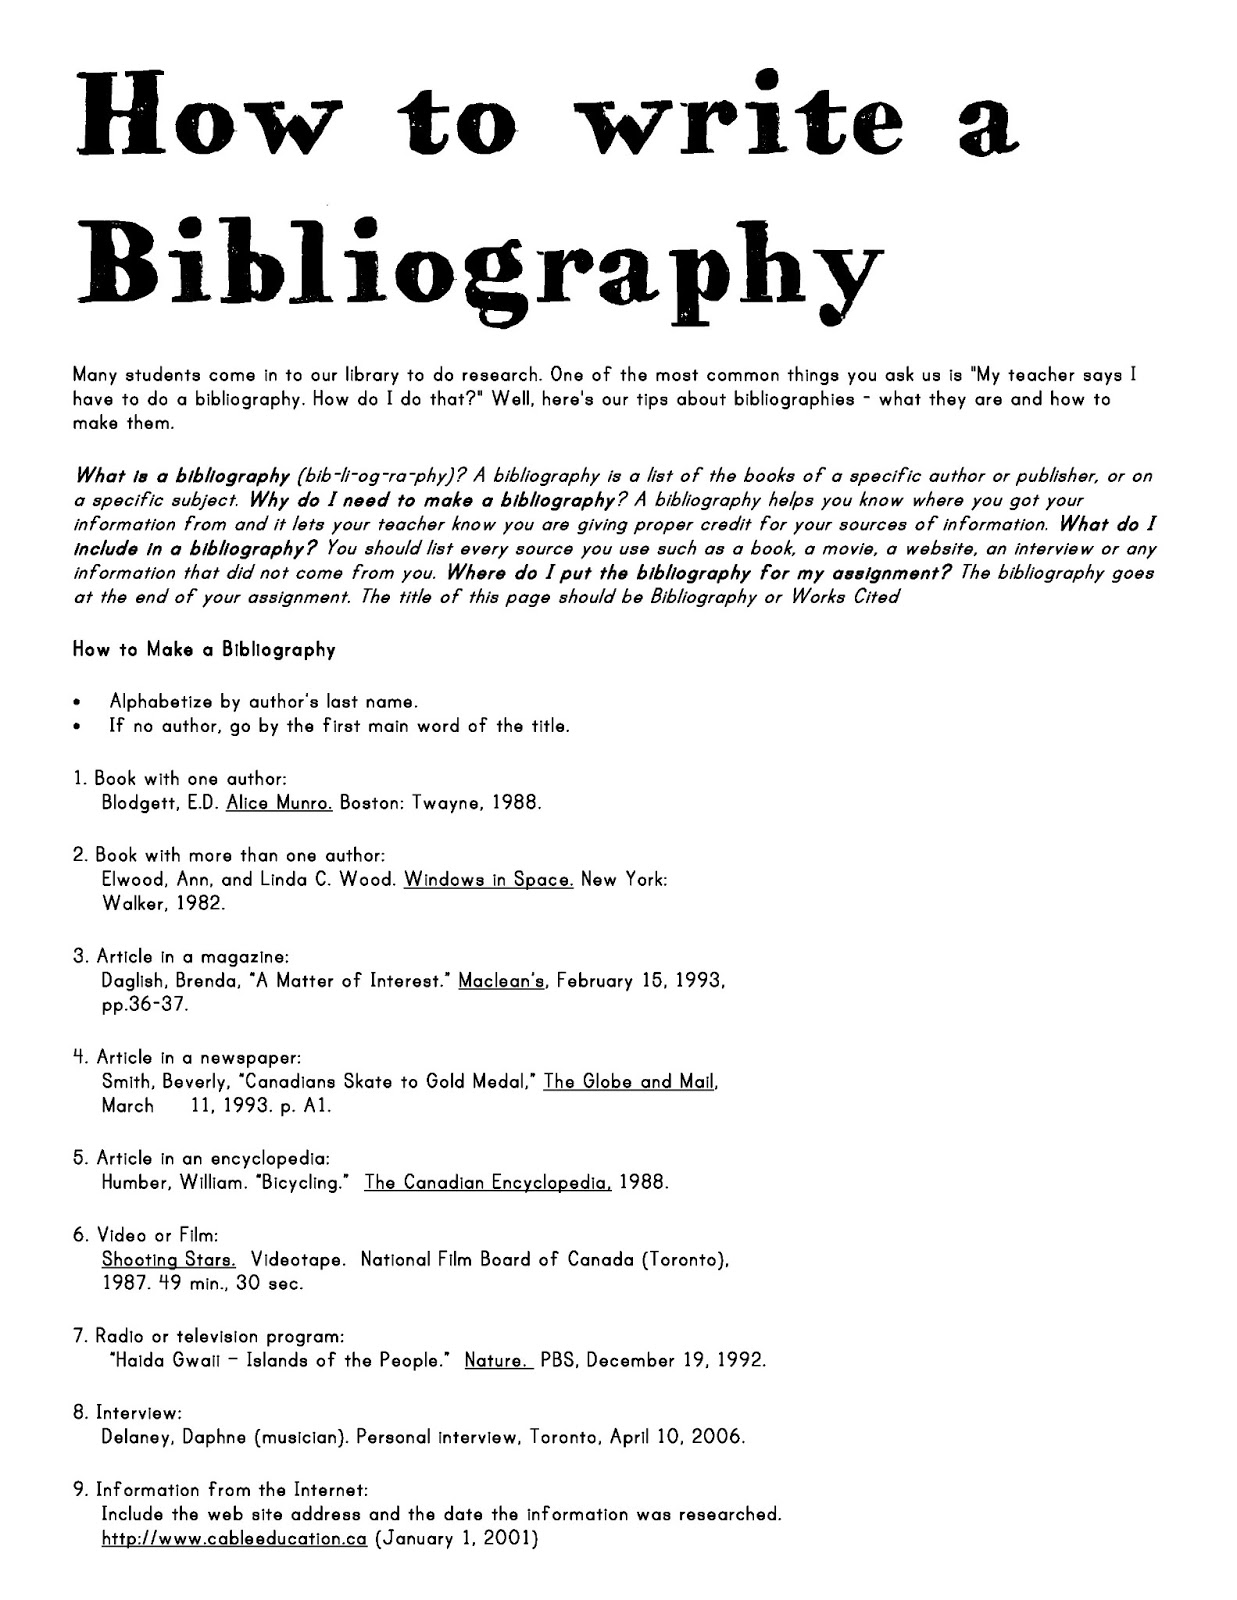 How to Make a Bibliography for Internet Sources